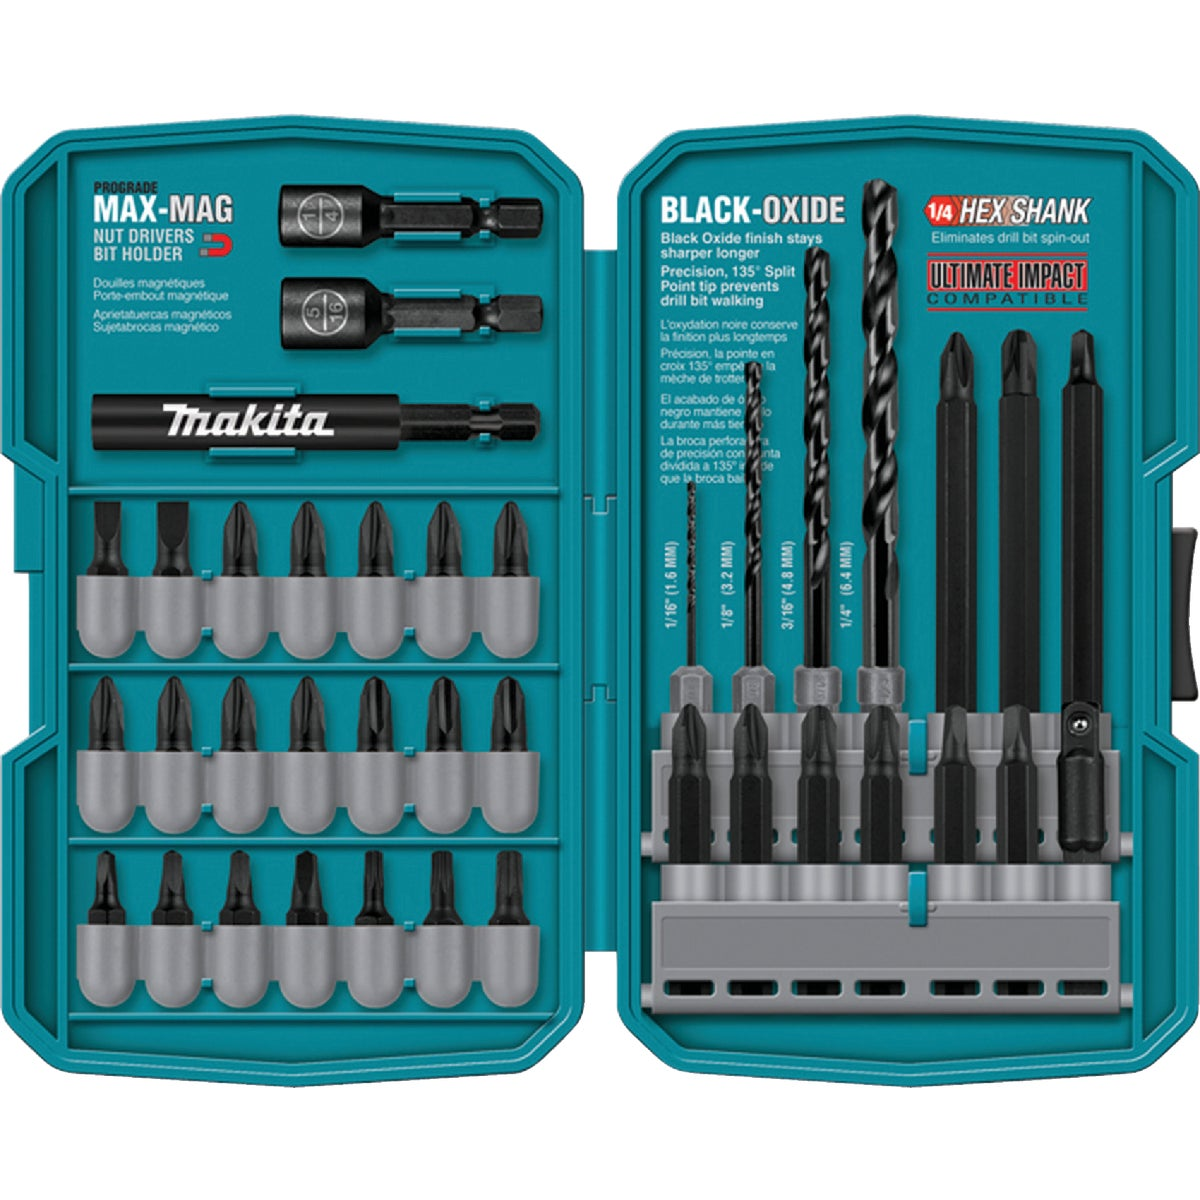 38-PIECE BIT SET - T-01373 by Makita Usa Accessory